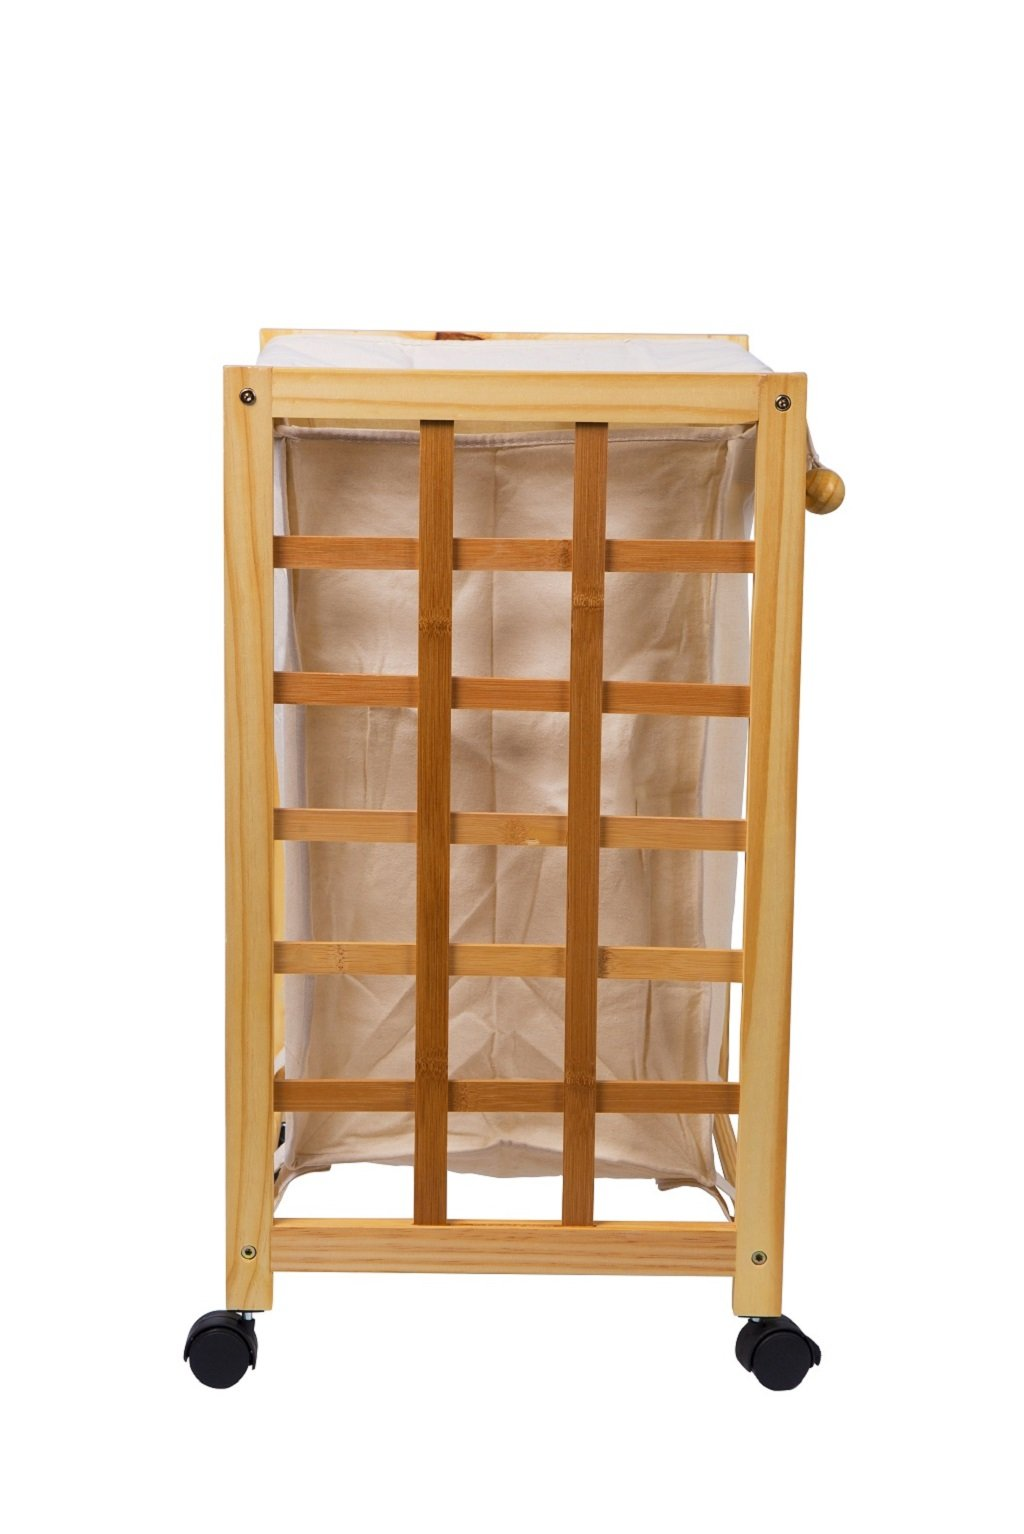 Laundry Hamper Sorter Cart Clothes Basket Storage with Wheels and Cover Bamboo Design by Bamfan (Image #6)